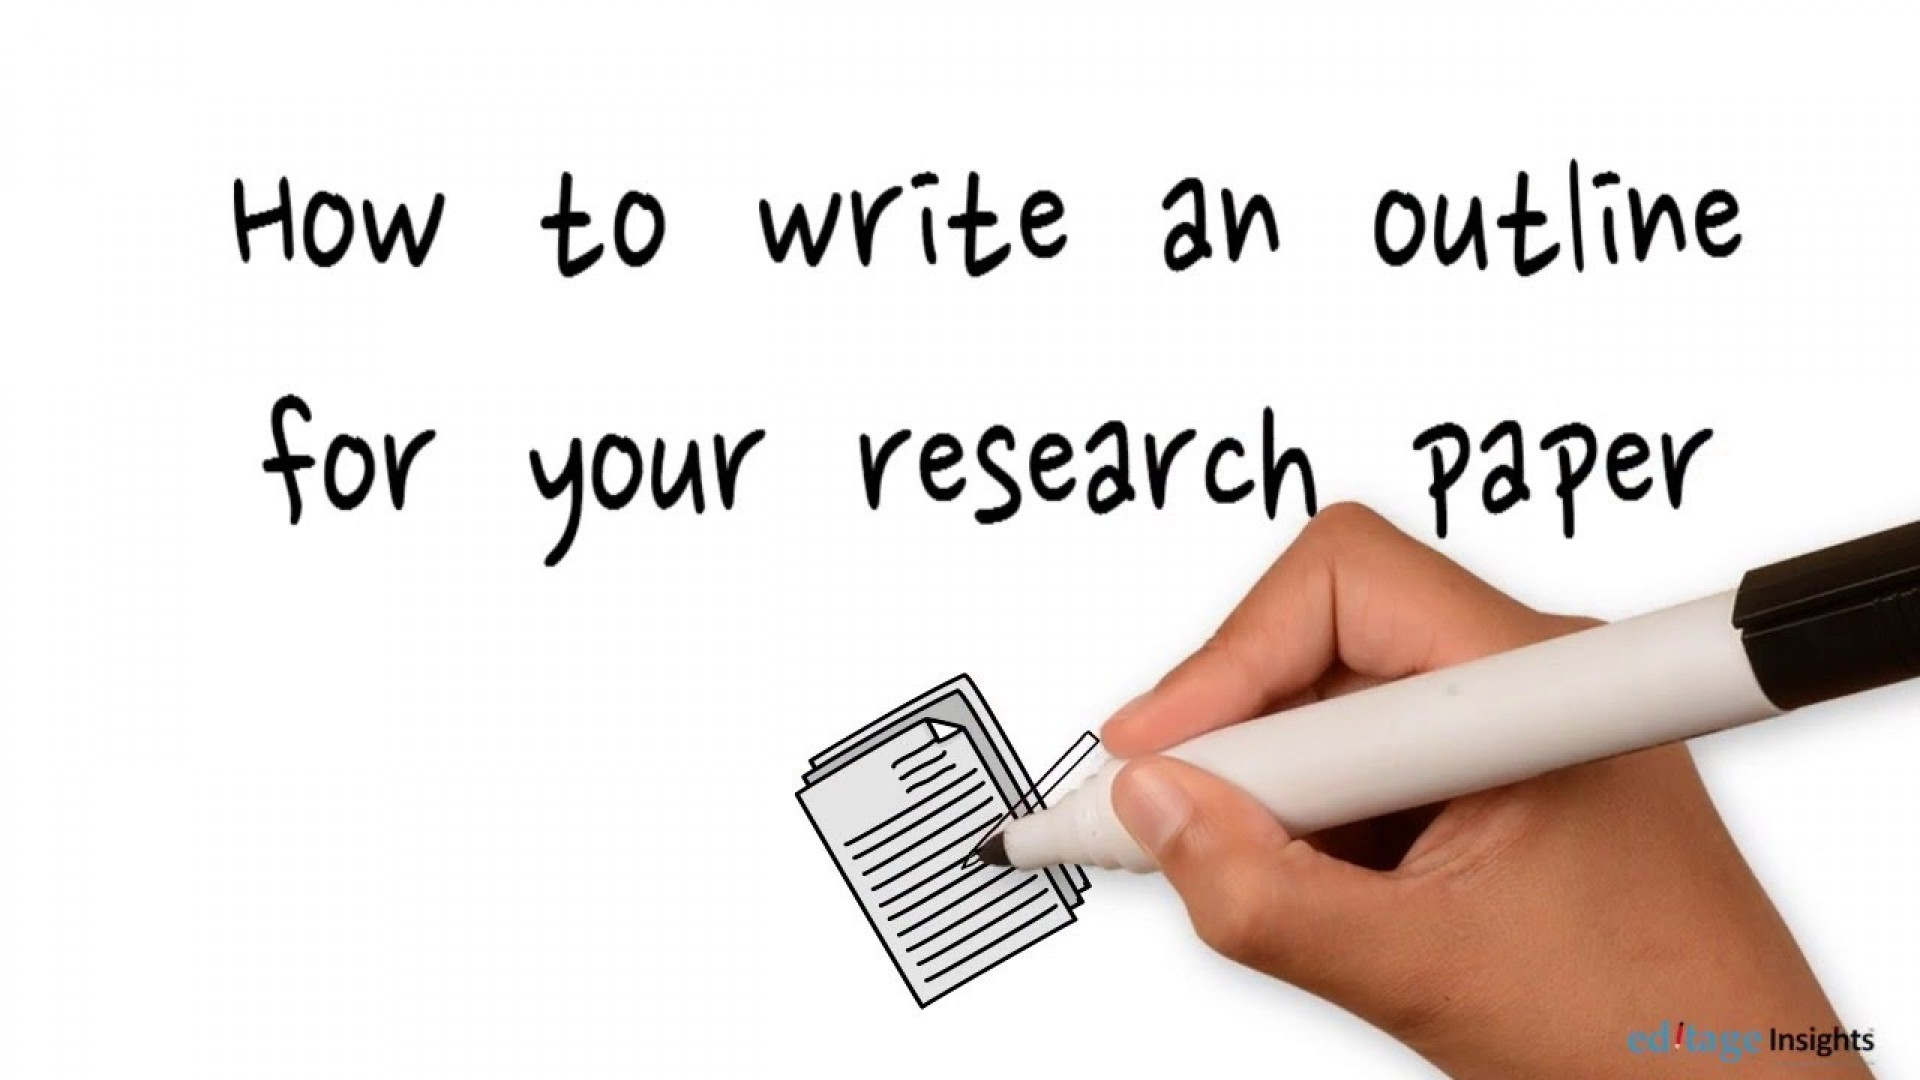 006 Help Writing Researchs Maxresdefault Outstanding Research Papers Need My Paper 1920